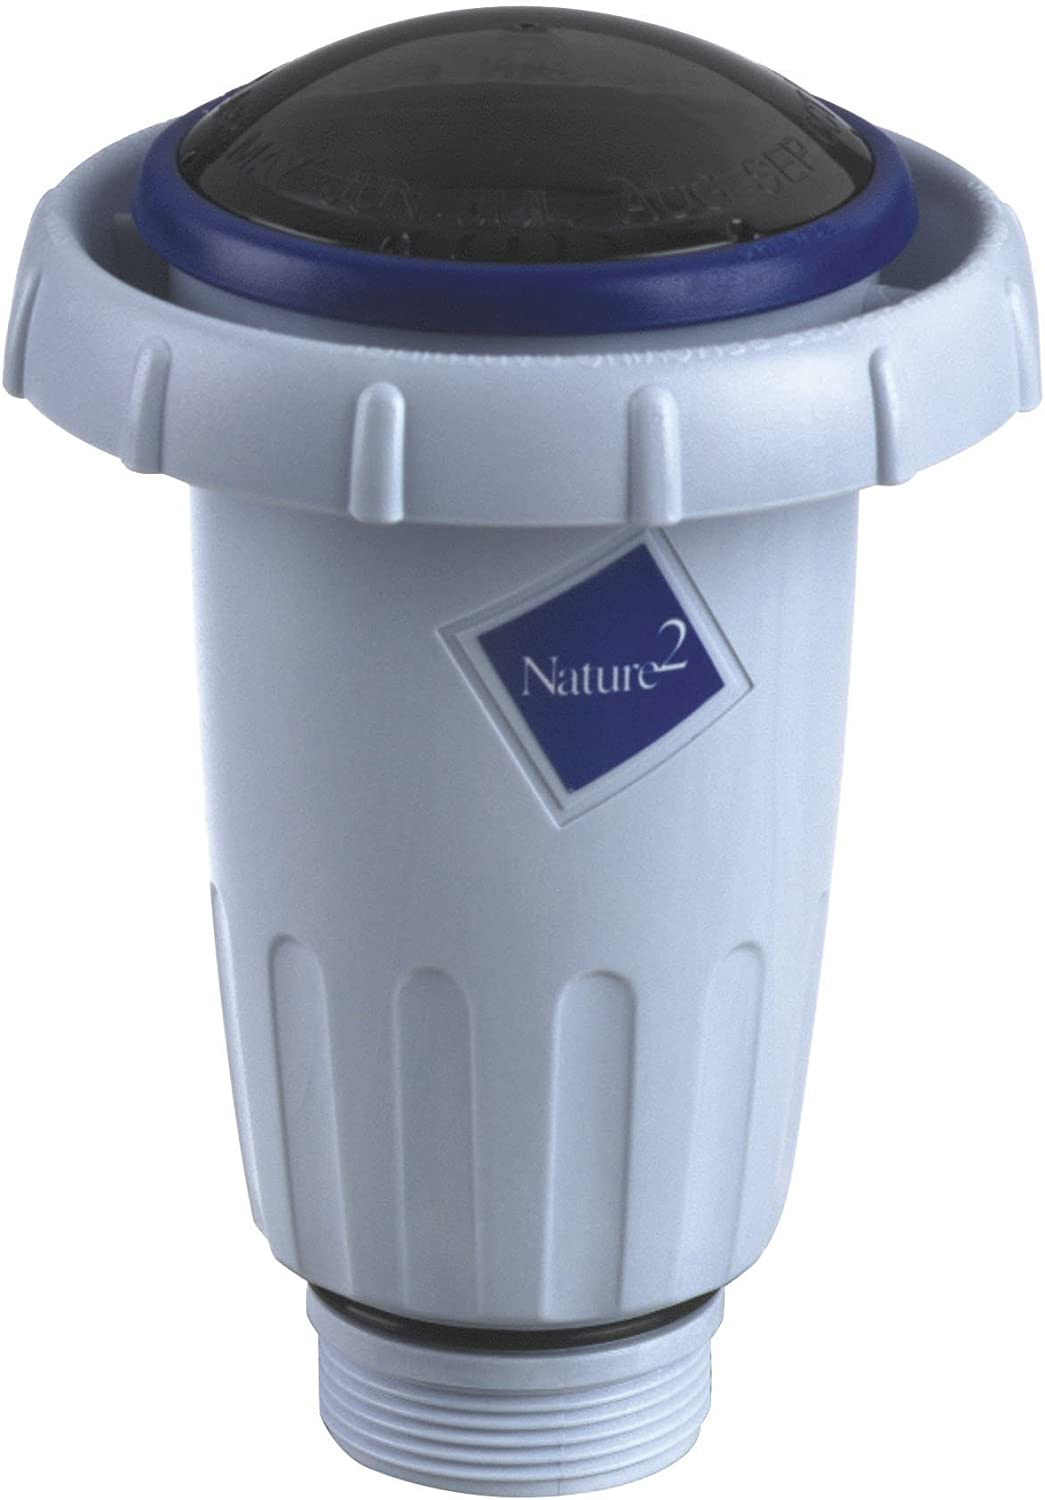 NATURE2 W28175 Express Above/InGround Vessel Pool Mineral Sanitizer Cartridge